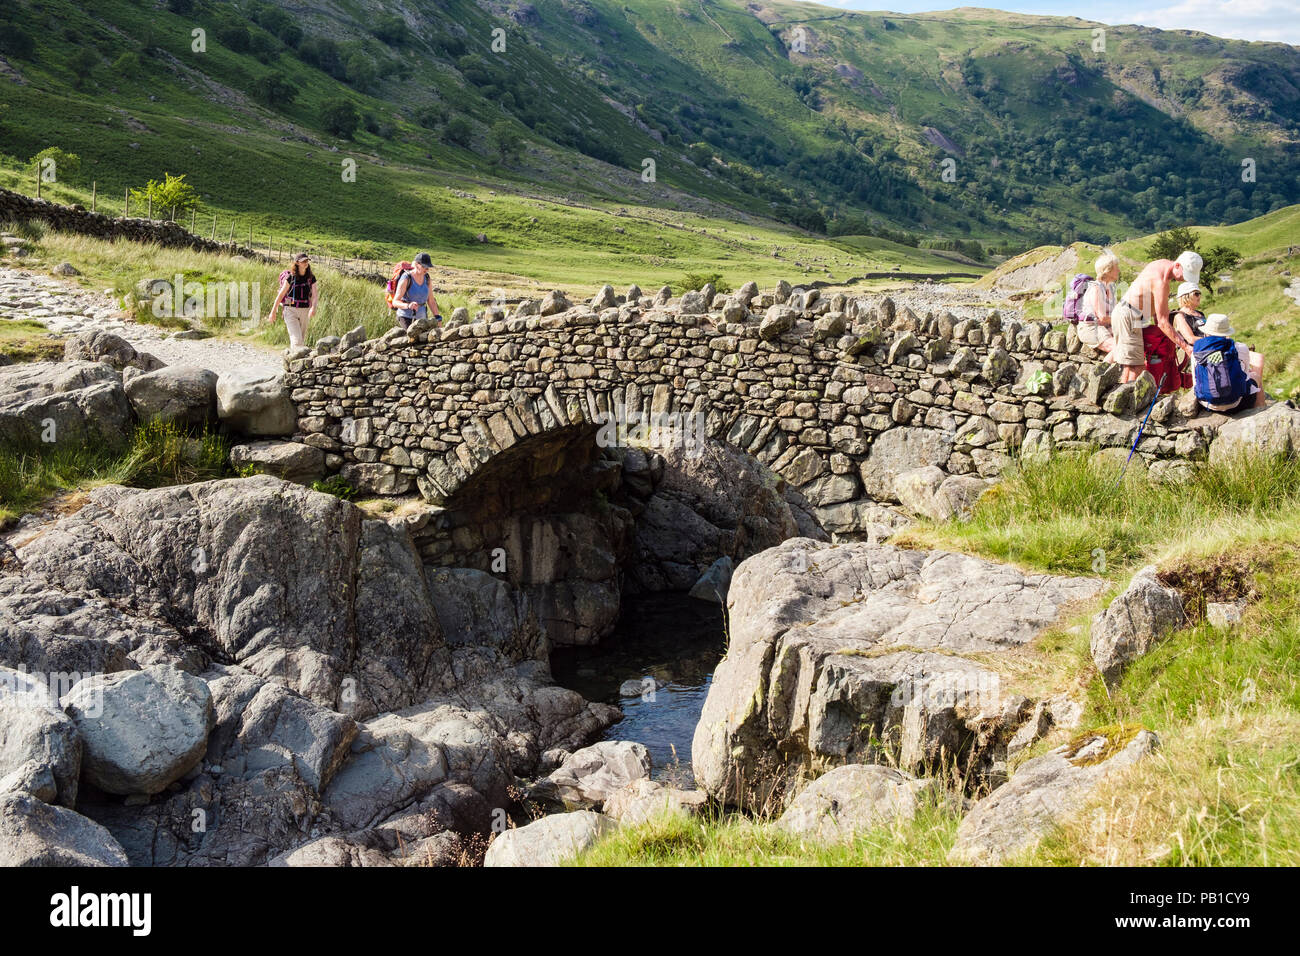 Hikers hiking on track over Stockley Bridge in Lake District National Park in summer. Seathwaite, Cumbria, England, UK, Britain - Stock Image